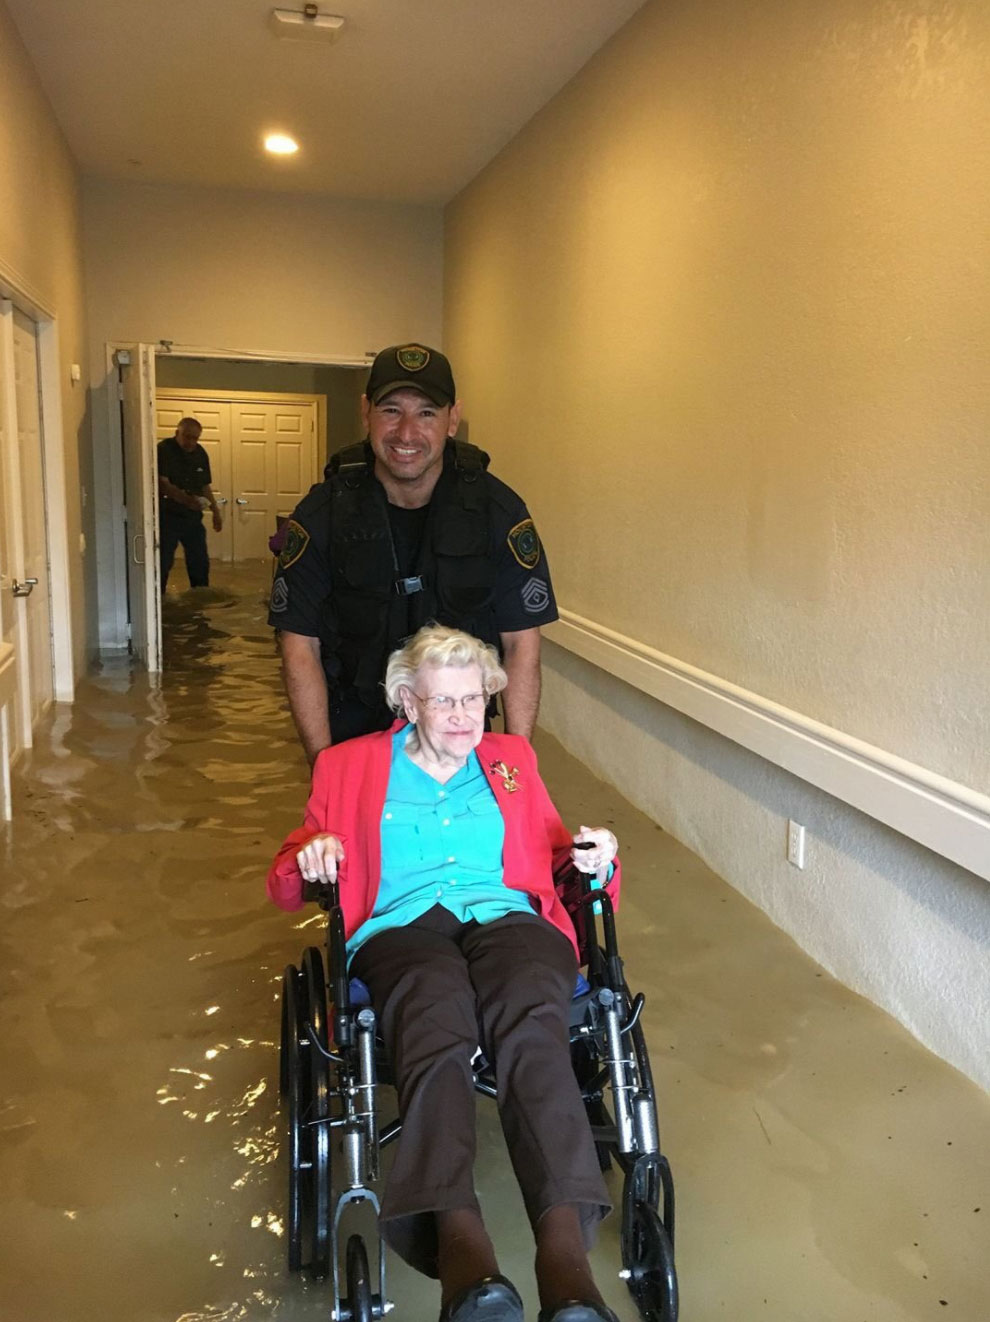 "<div class=""meta image-caption""><div class=""origin-logo origin-image none""><span>none</span></div><span class=""caption-text"">The Houston Police rescues a woman stranded by the flood. (houstonpolice/Twitter)</span></div>"